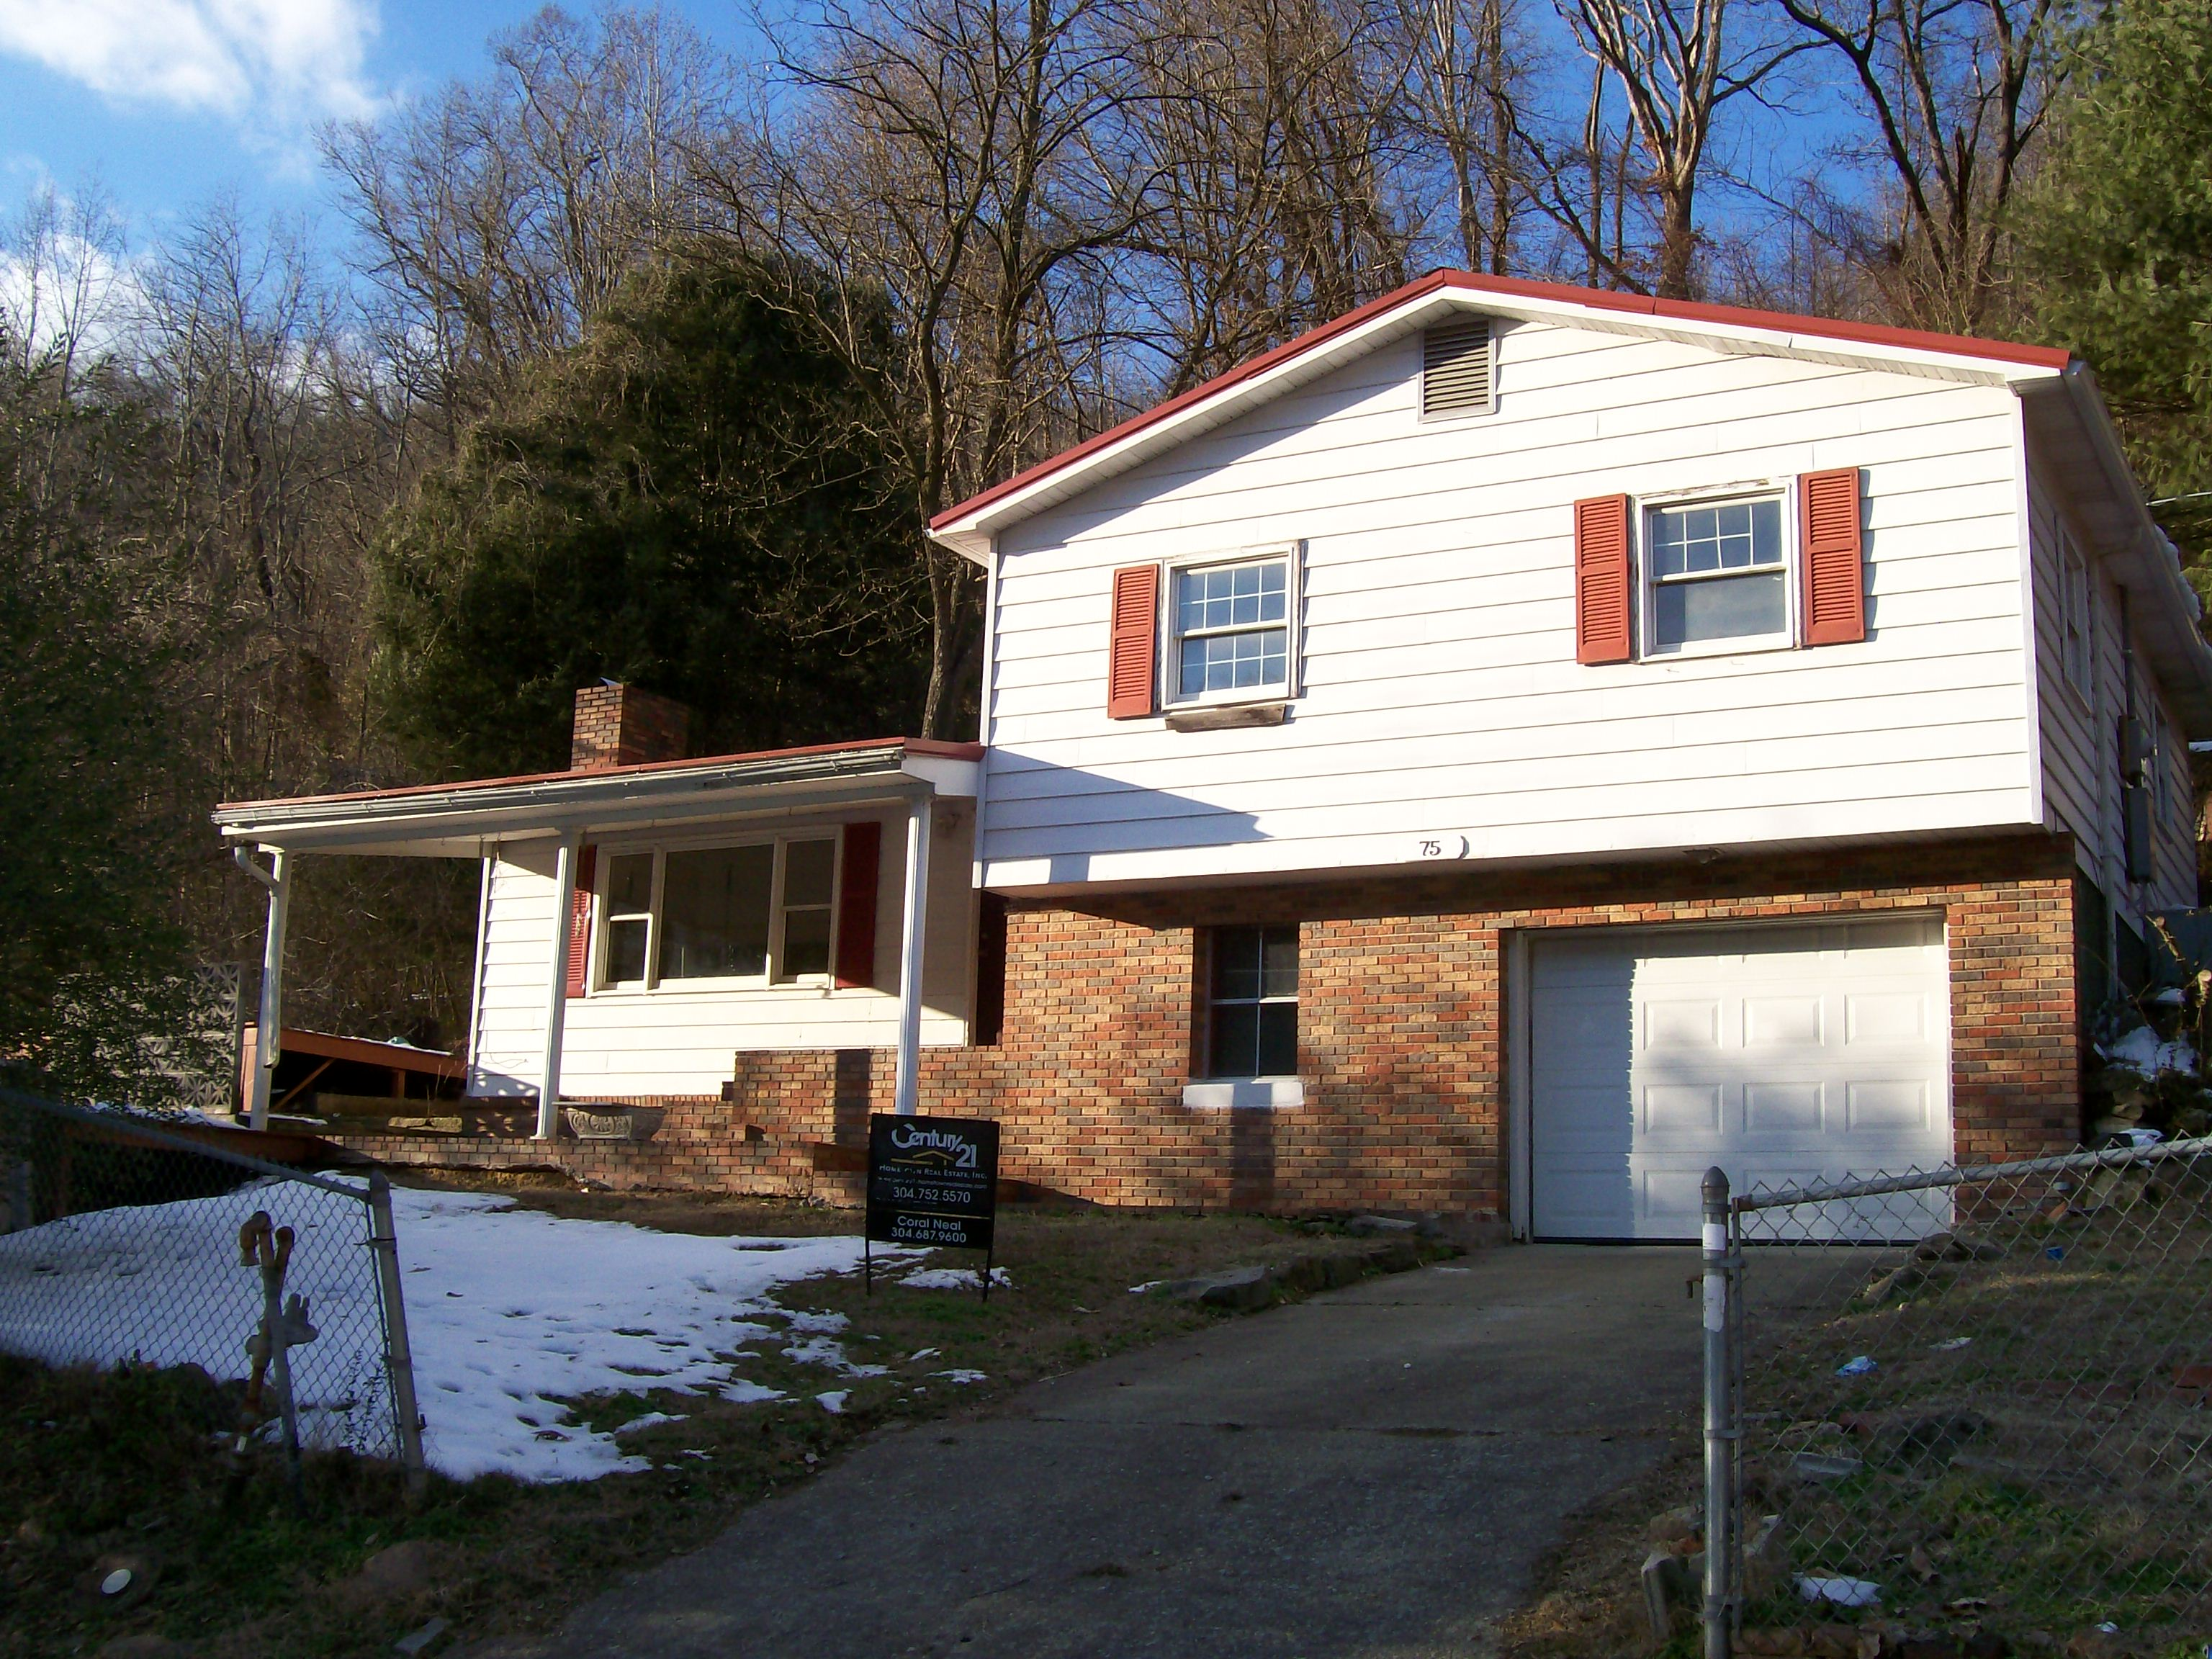 75 Highlawn Road, Mallory, West Virginia 25634